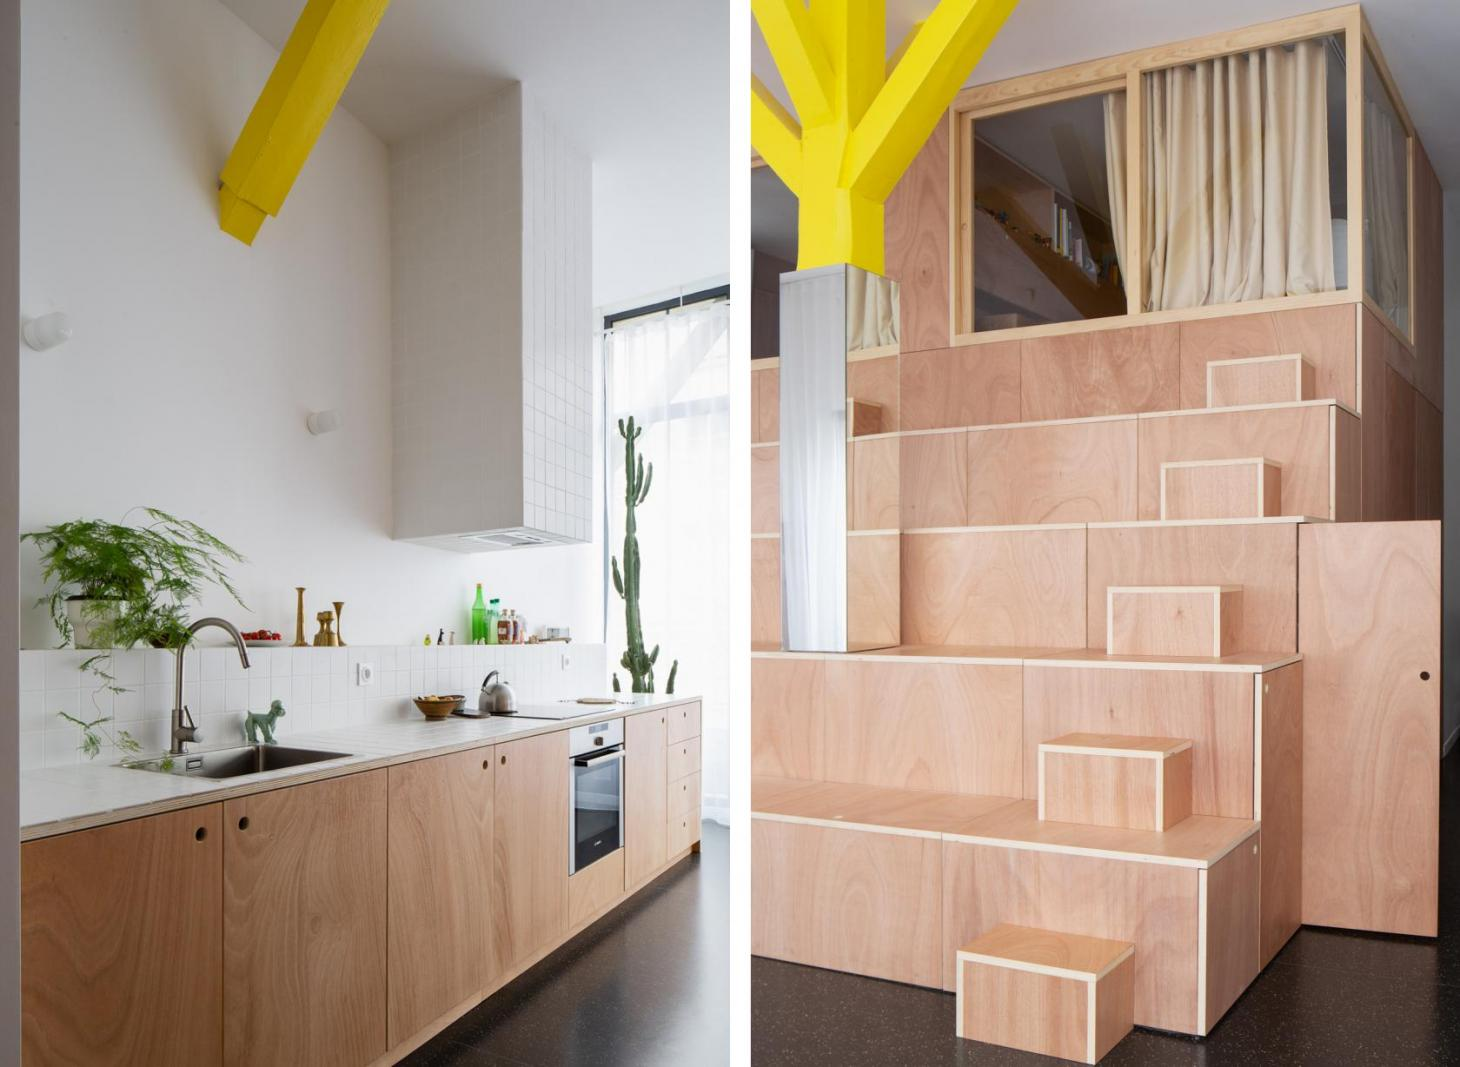 A paired image sees a wooden interior storage space